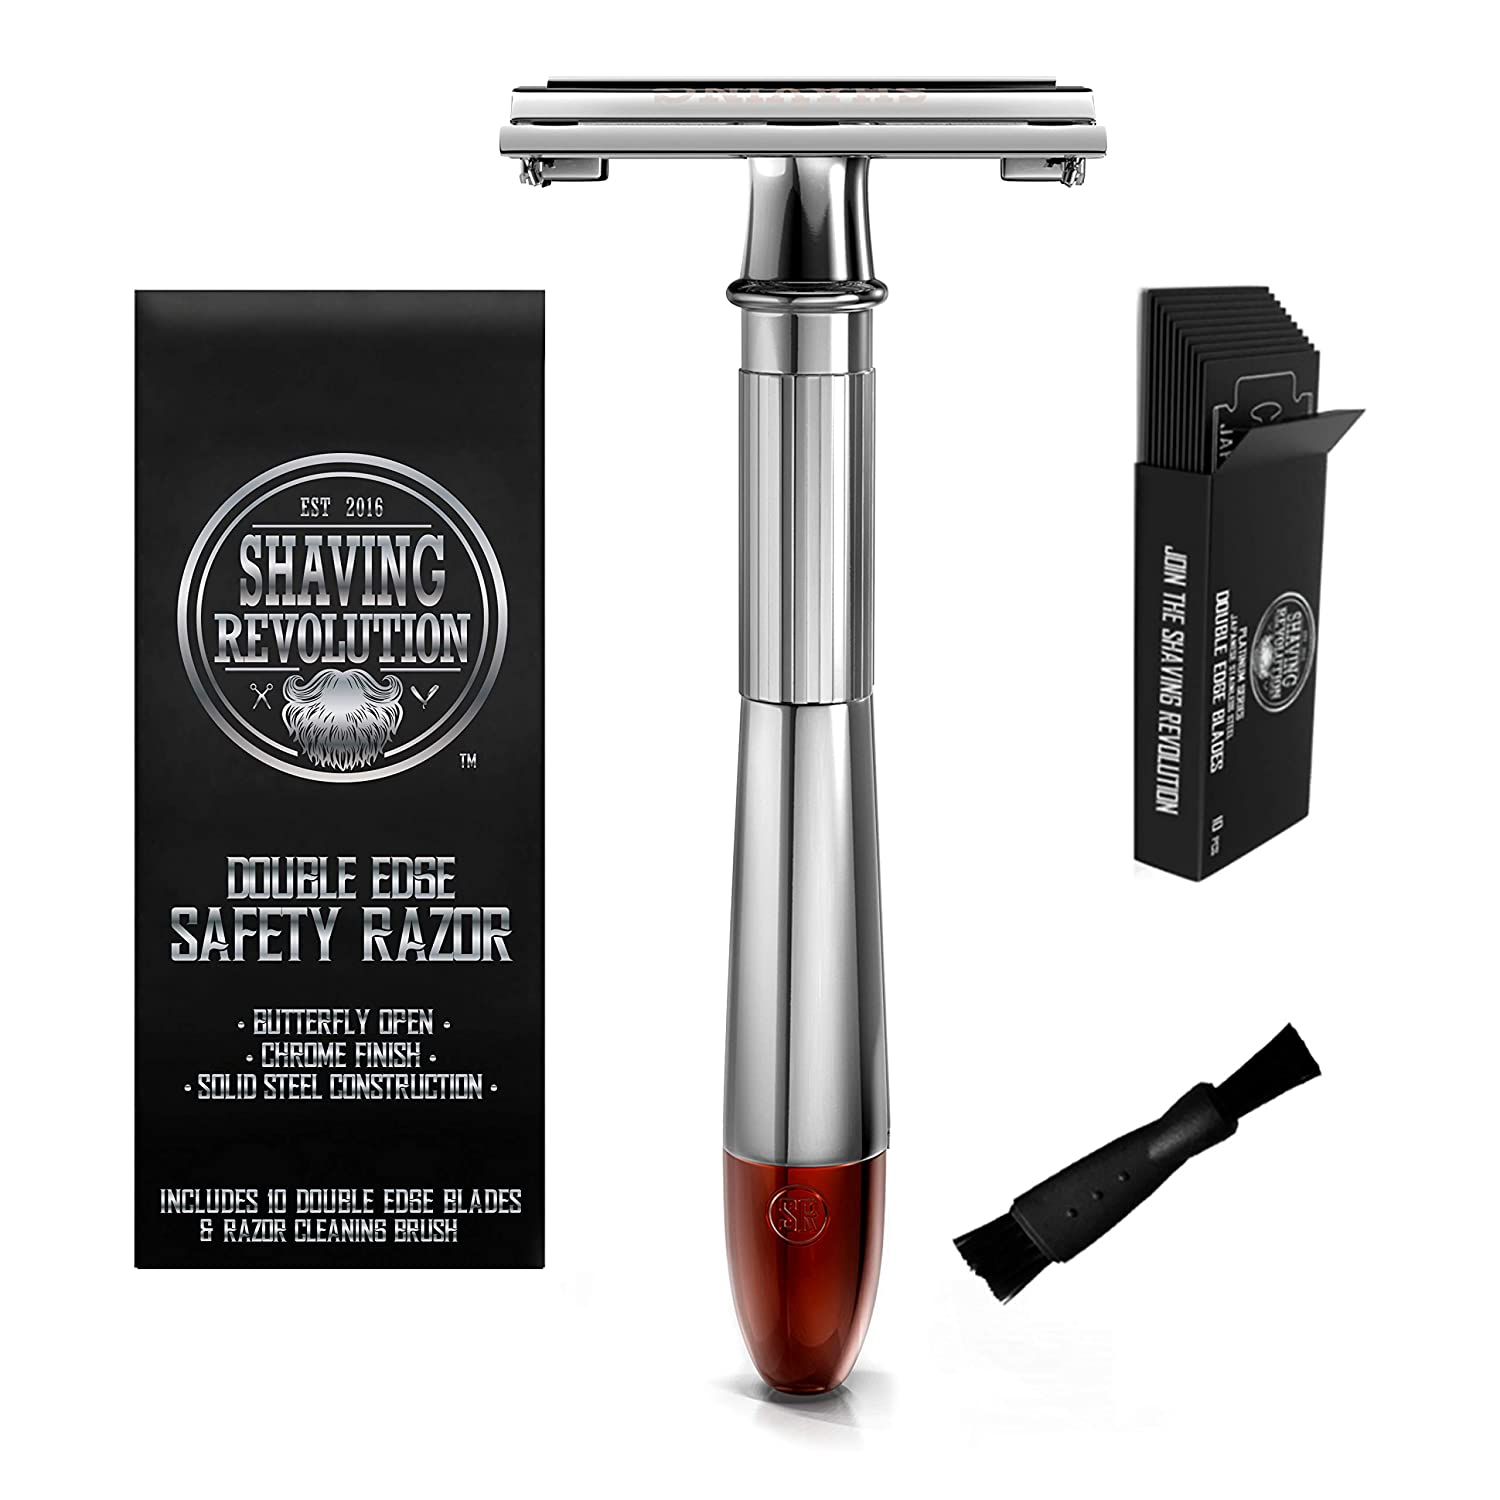 Double Edge Safety Razor - Butterfly Open Razor with 10 Japanese Stainless Steel Blades - Close, Clean Shaving Razor for Men (Silver w/Red Tip)